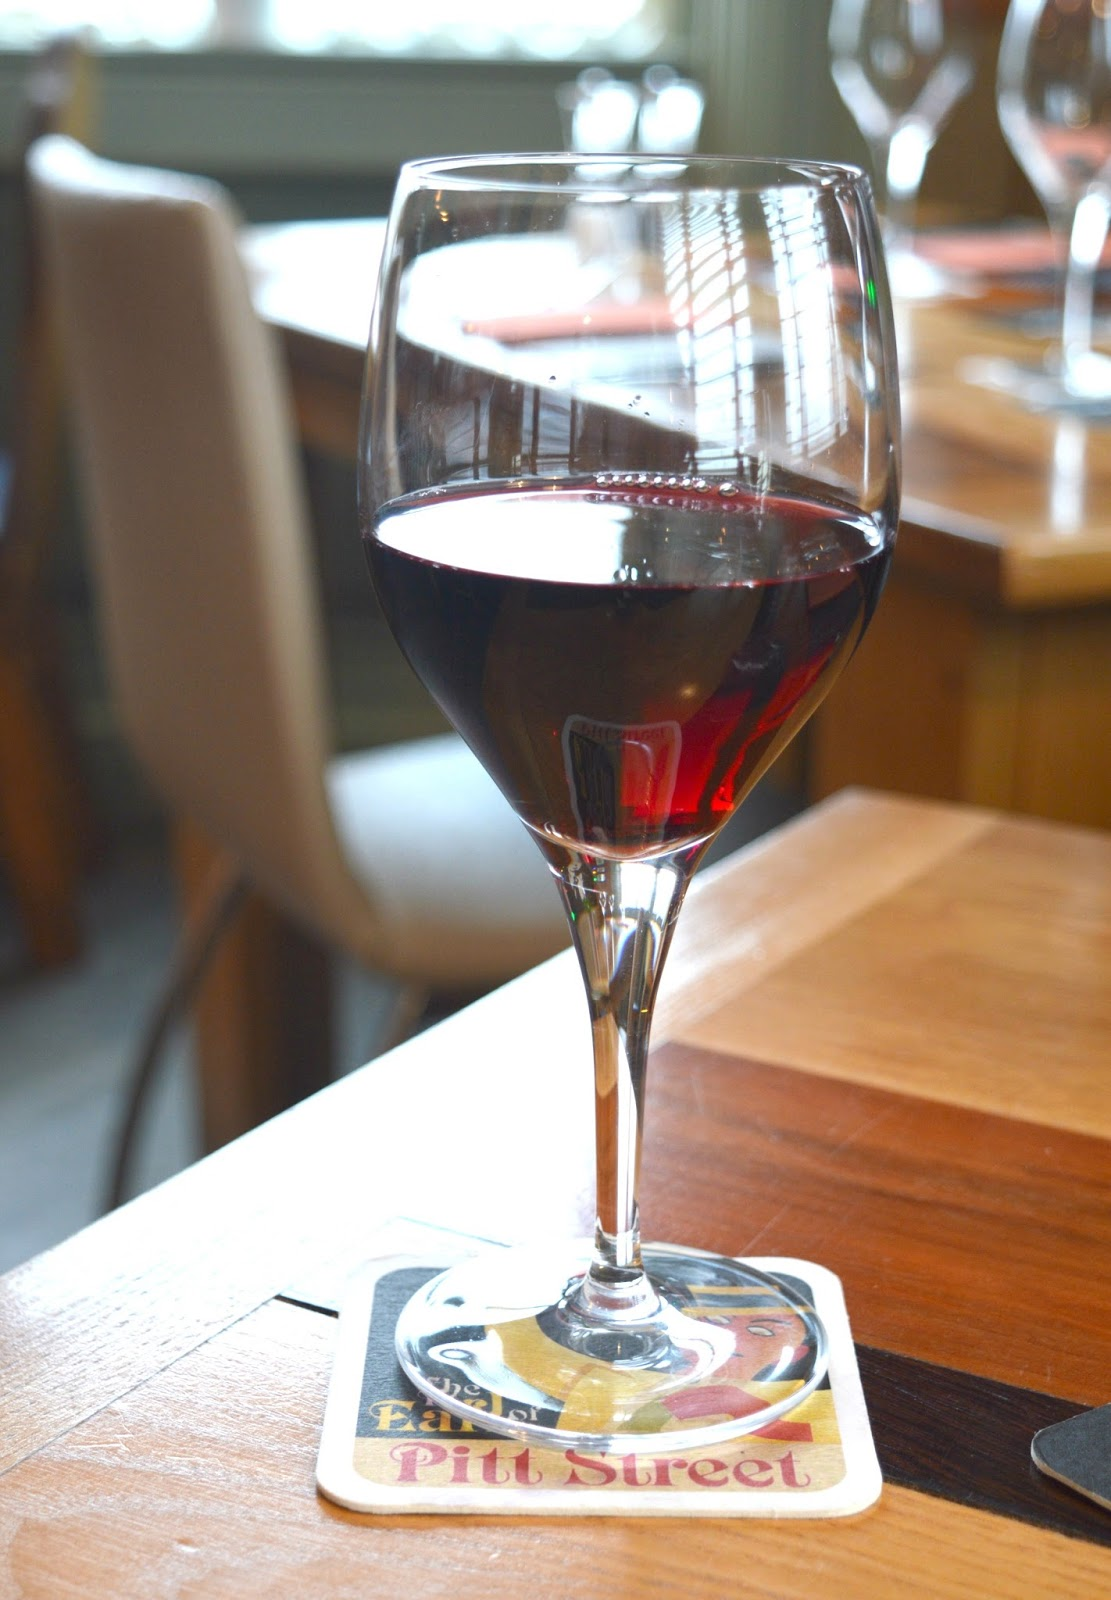 Sunday Lunch at the Earl of Pitt Street - Wine